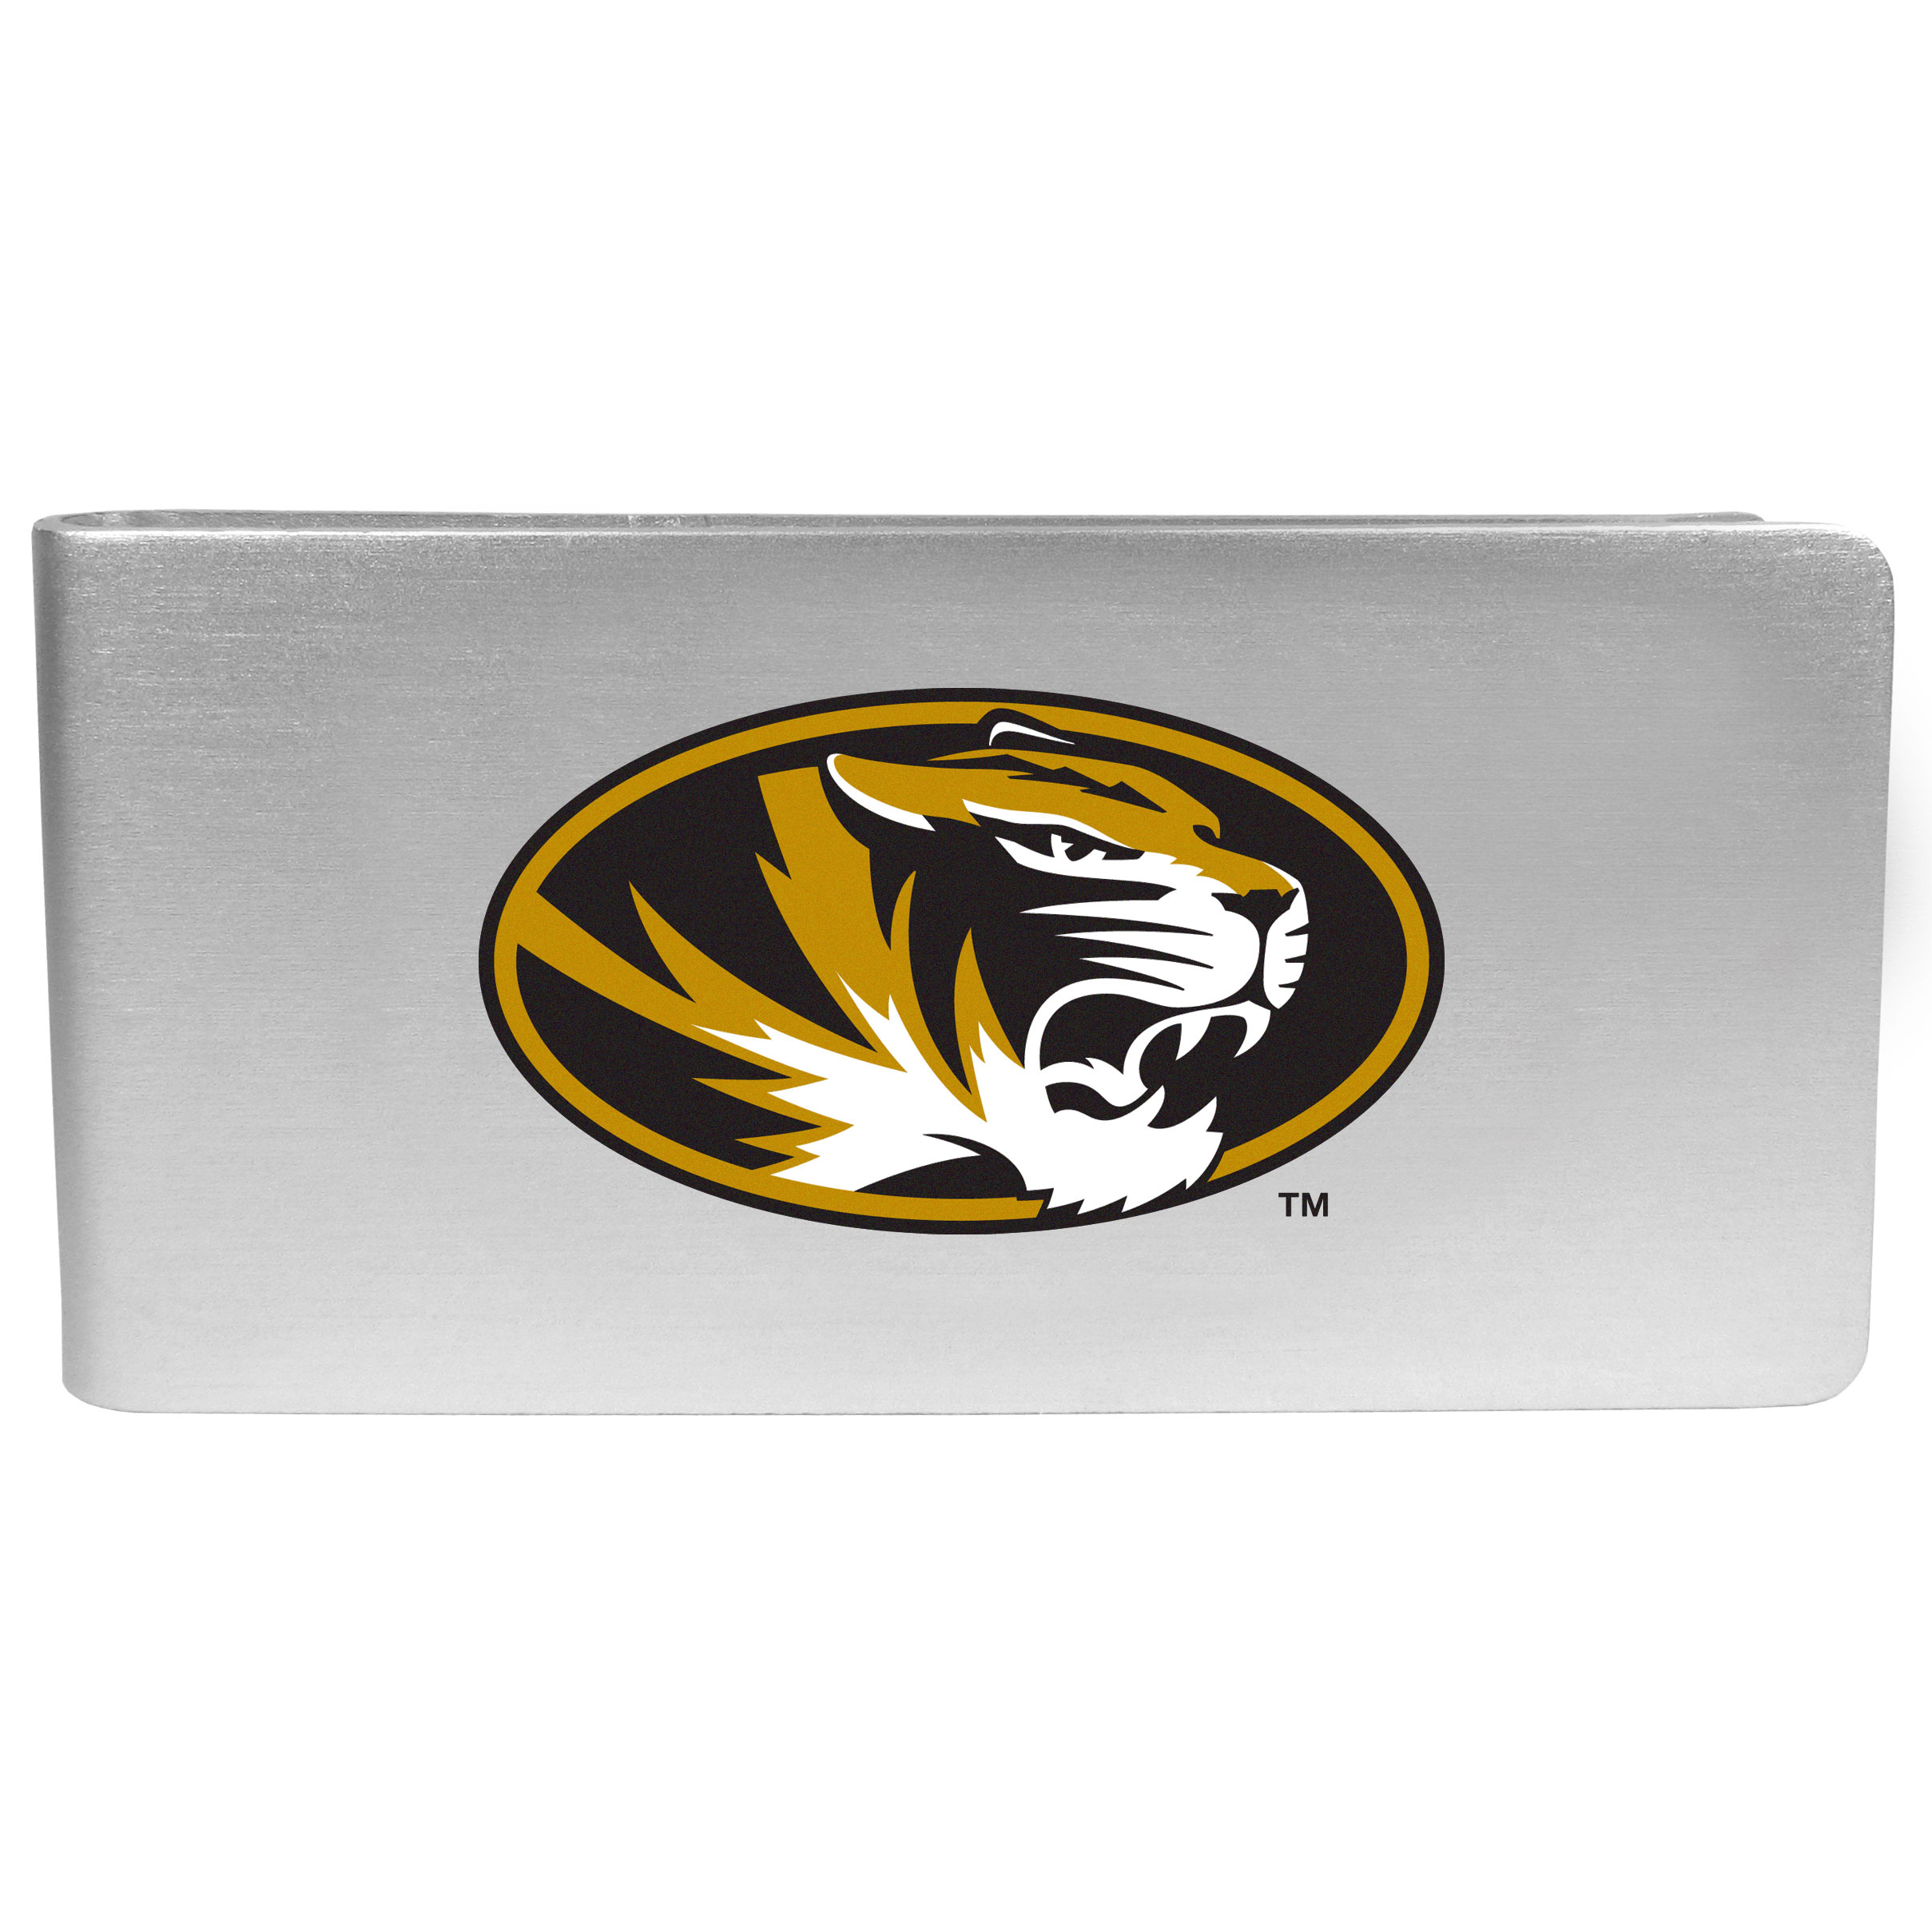 Missouri Tigers Logo Money Clip - Our brushed metal money clip has classic style and functionality. The attractive clip features the Missouri Tigers logo expertly printed on front.